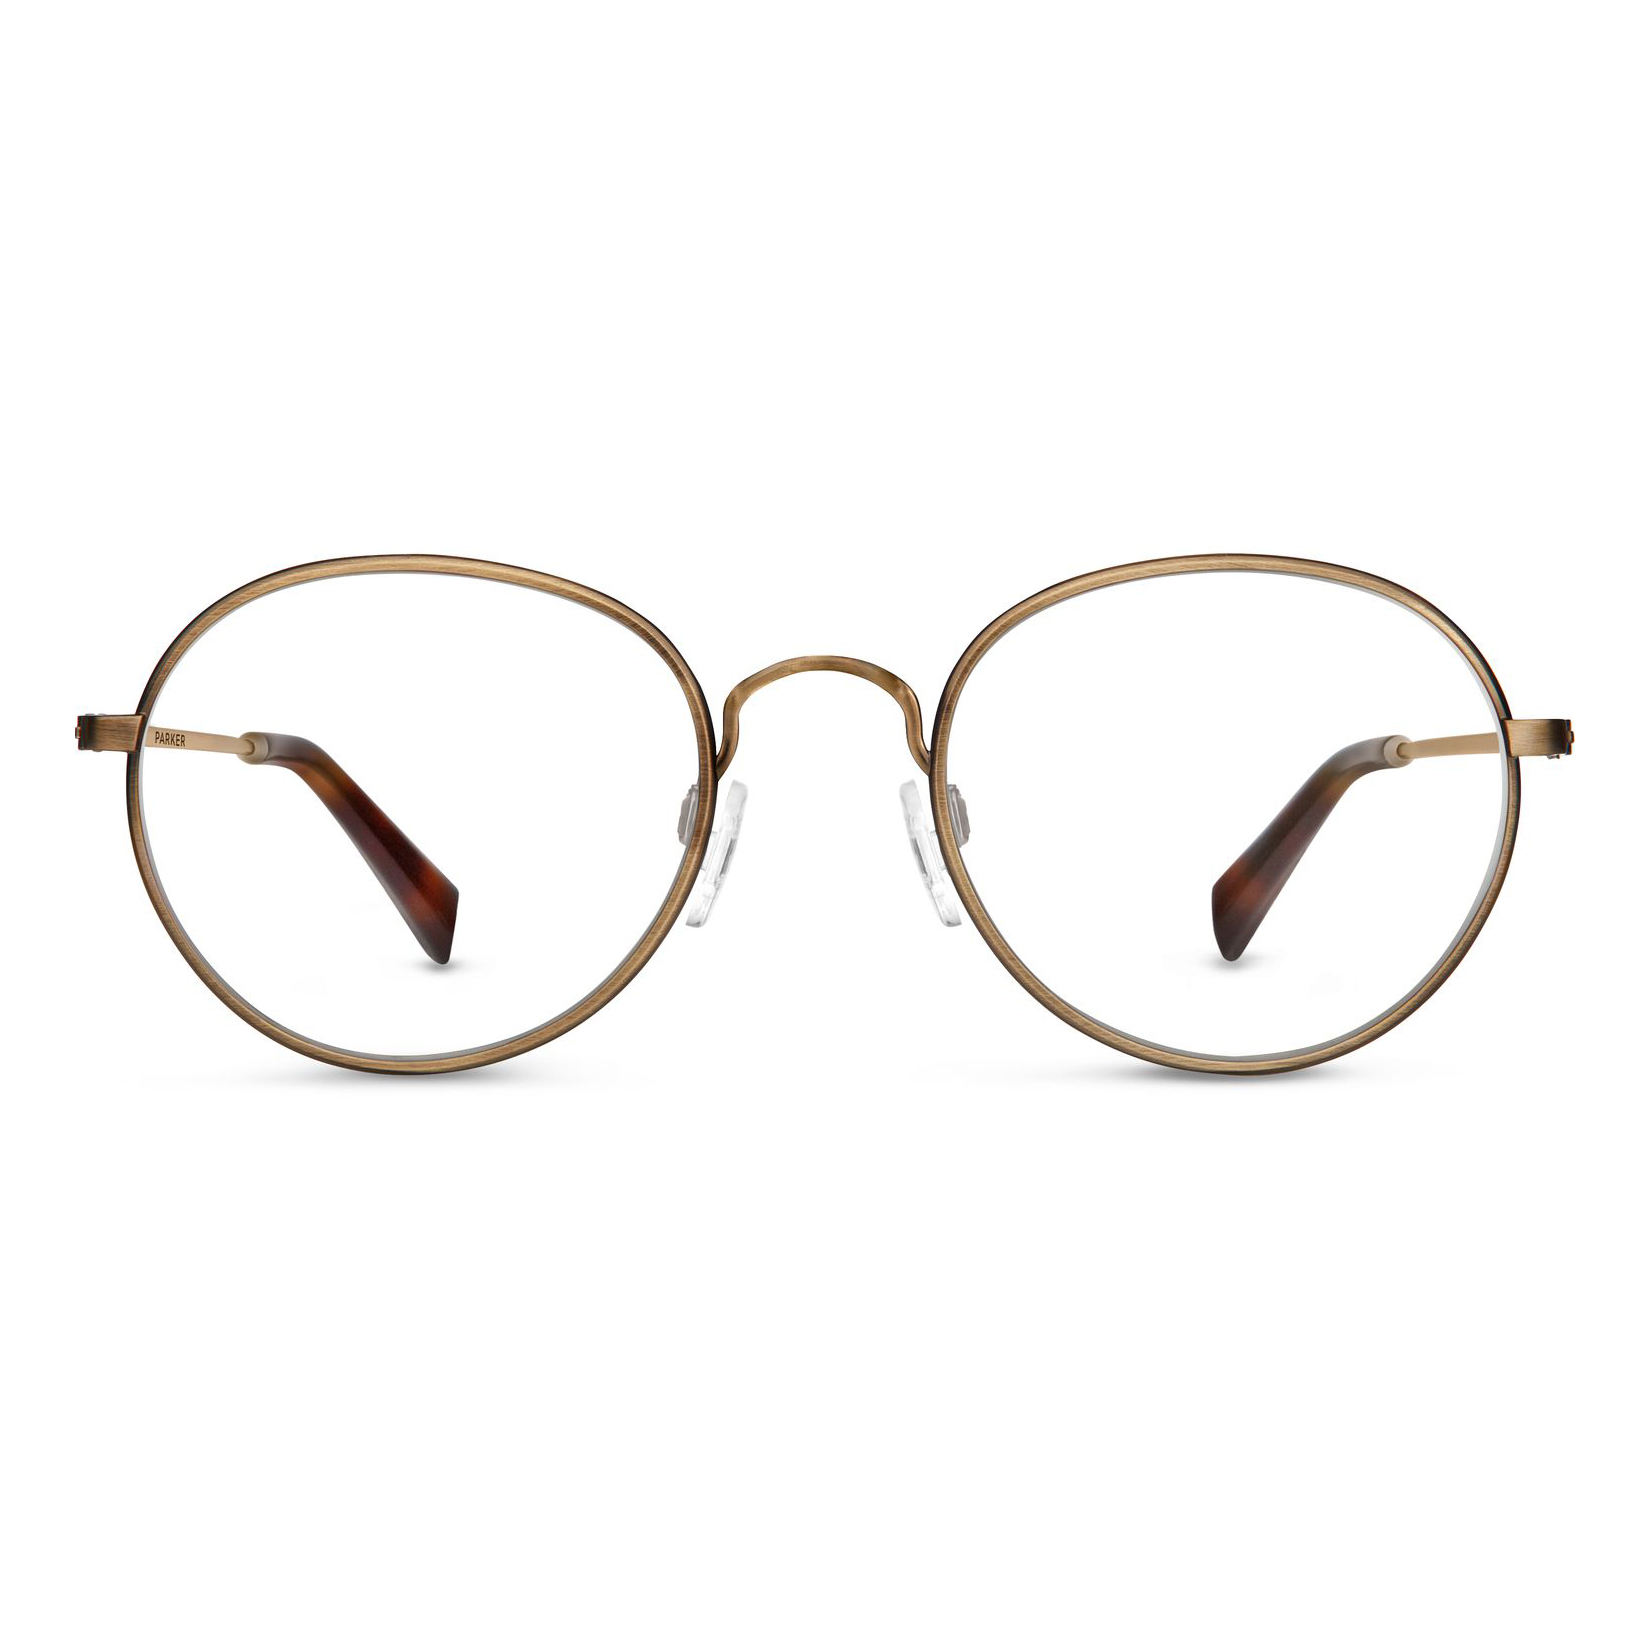 Abbott Duckworth Prescription Eyeglass Trends 2016